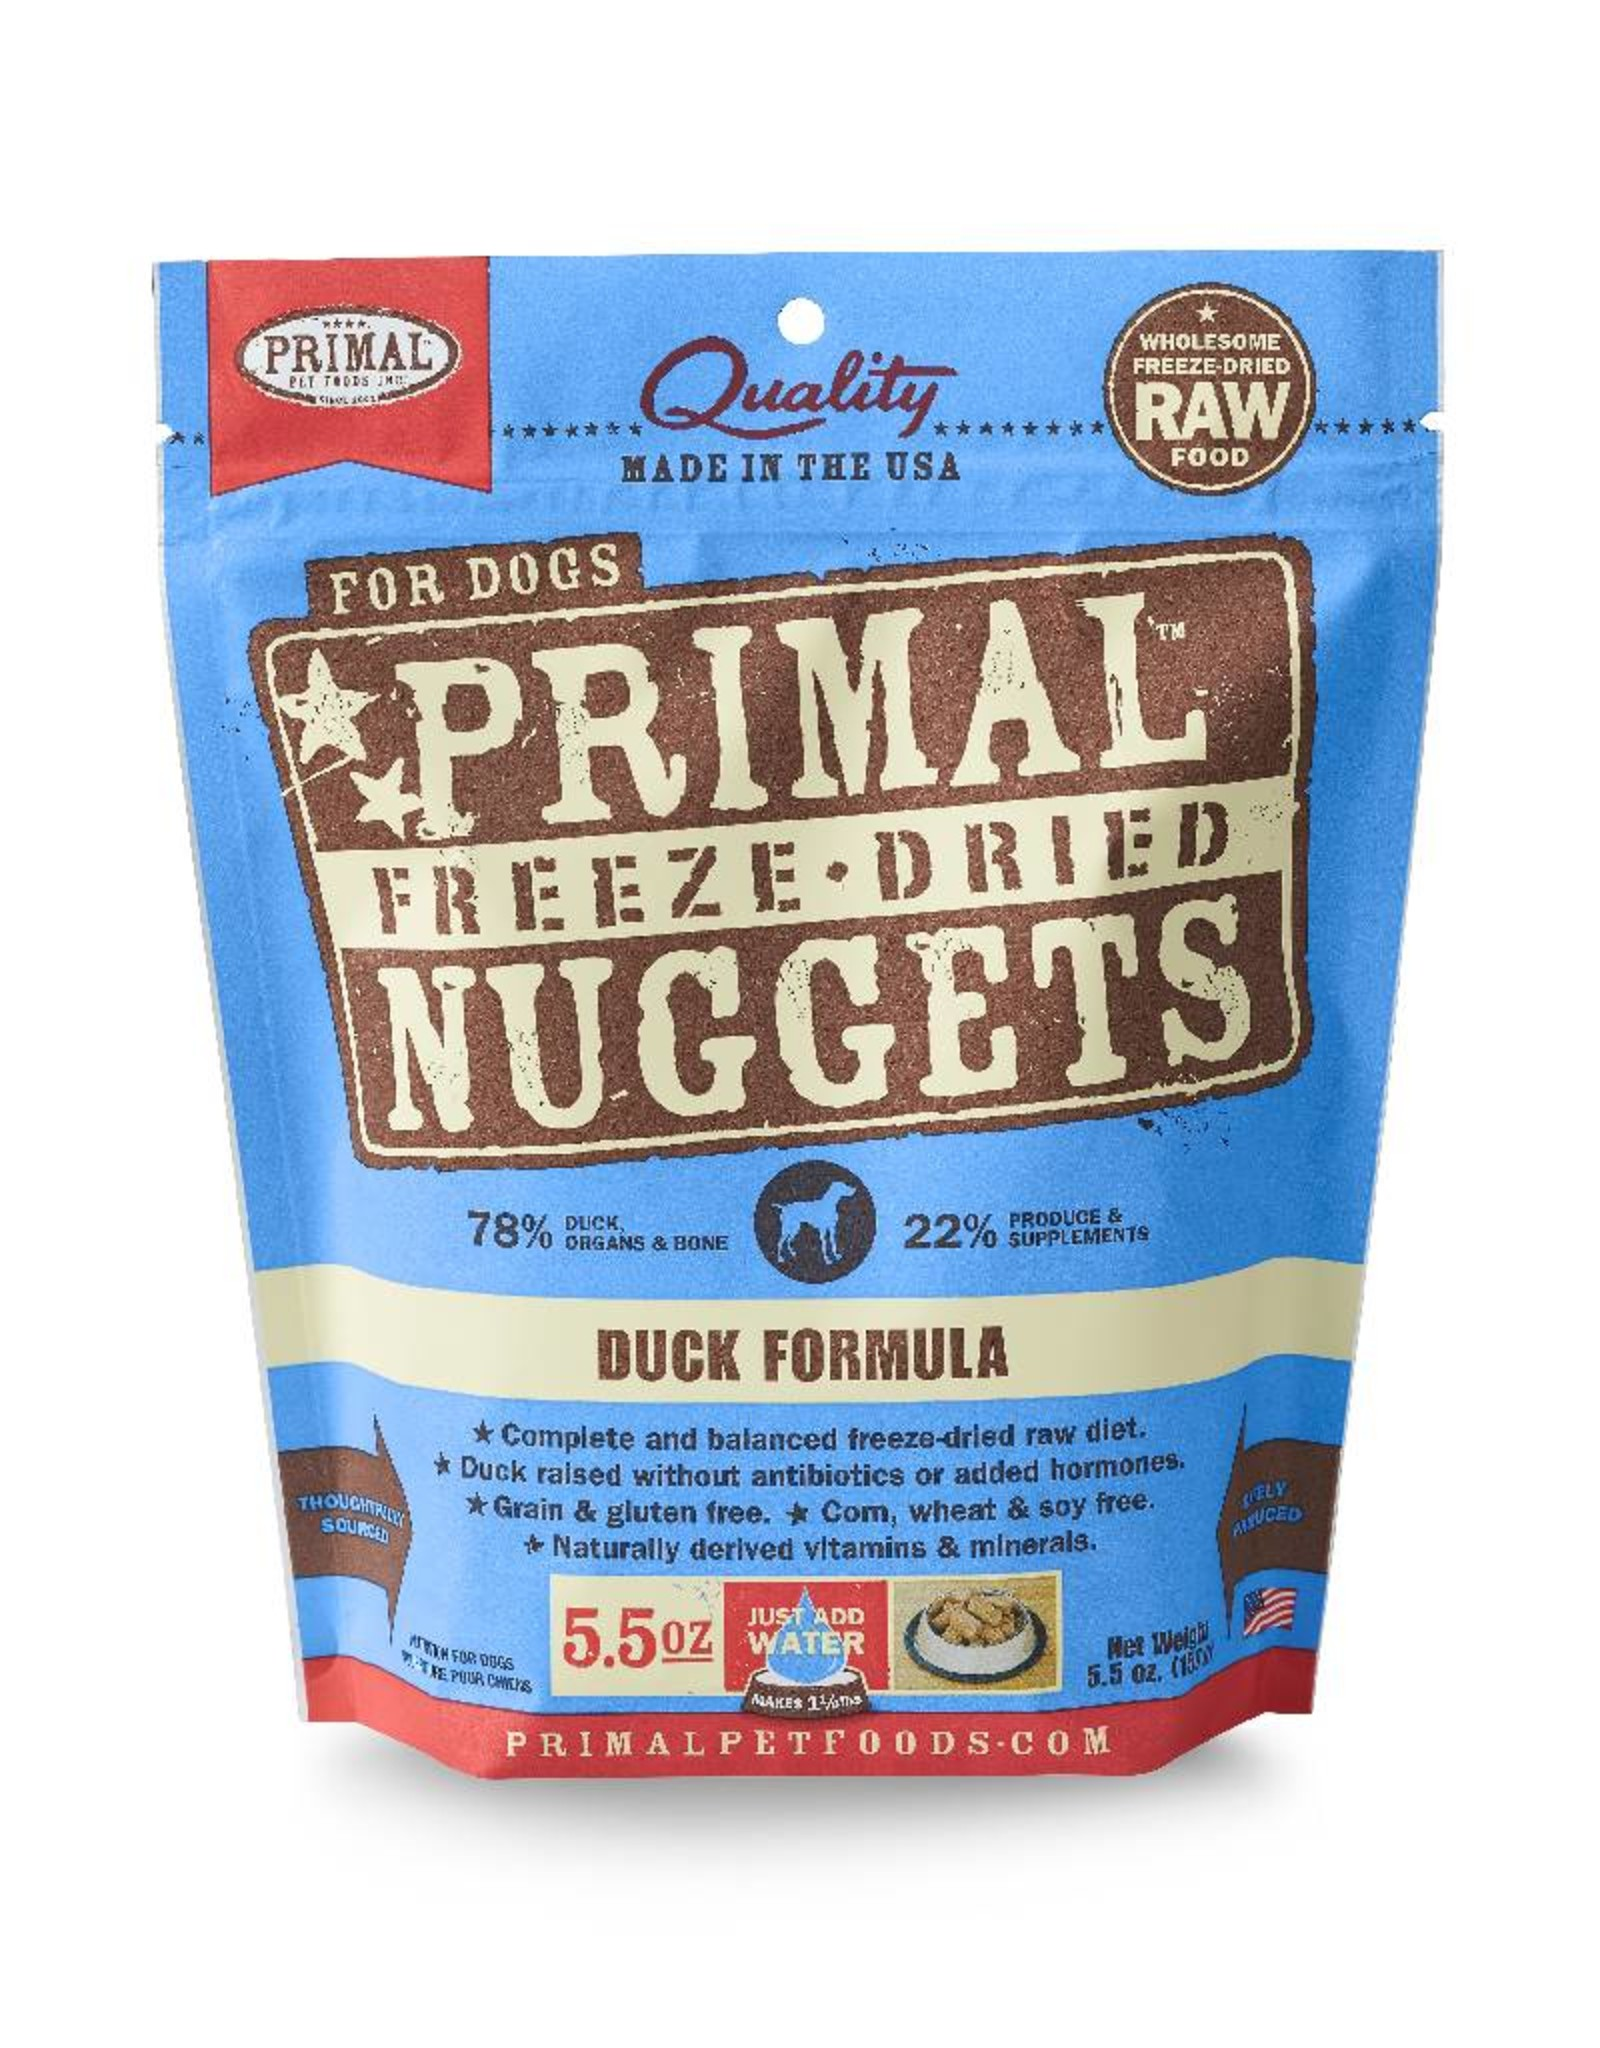 PRIMAL PET FOODS Primal | Freeze Dried Nuggets Canine Duck Formula